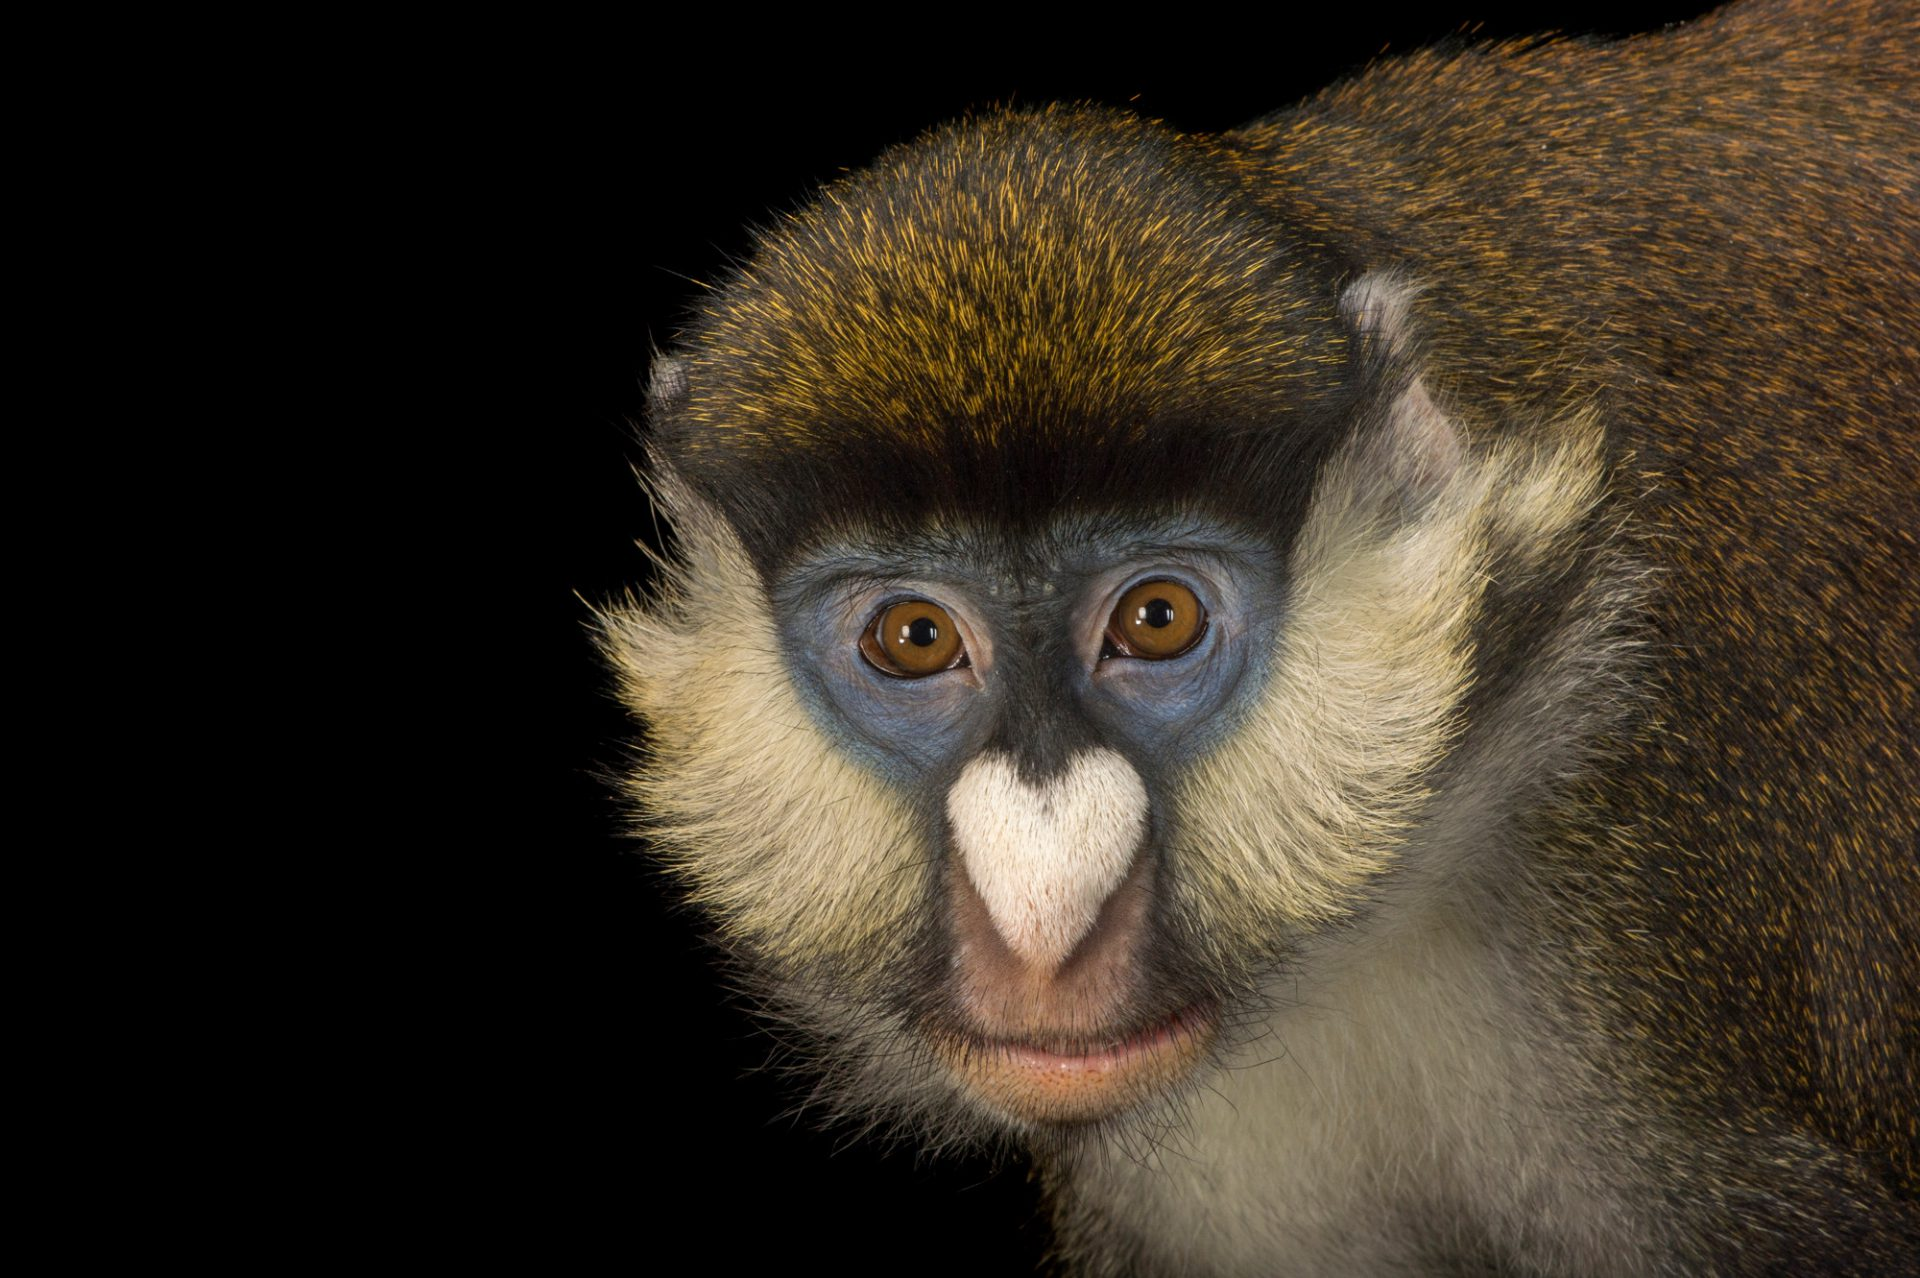 A 10-year-old Schmidt's guenon (Cercopithecus ascanius schmidti) at Zoo Atlanta. This animal's name is Jasiri or J.J.. He is very protective, fun and is the most curious of any monkey at the zoo. Jasiri is really smart and likes to train with his keepers. He enjoys eating peanuts, grapes and craisins.